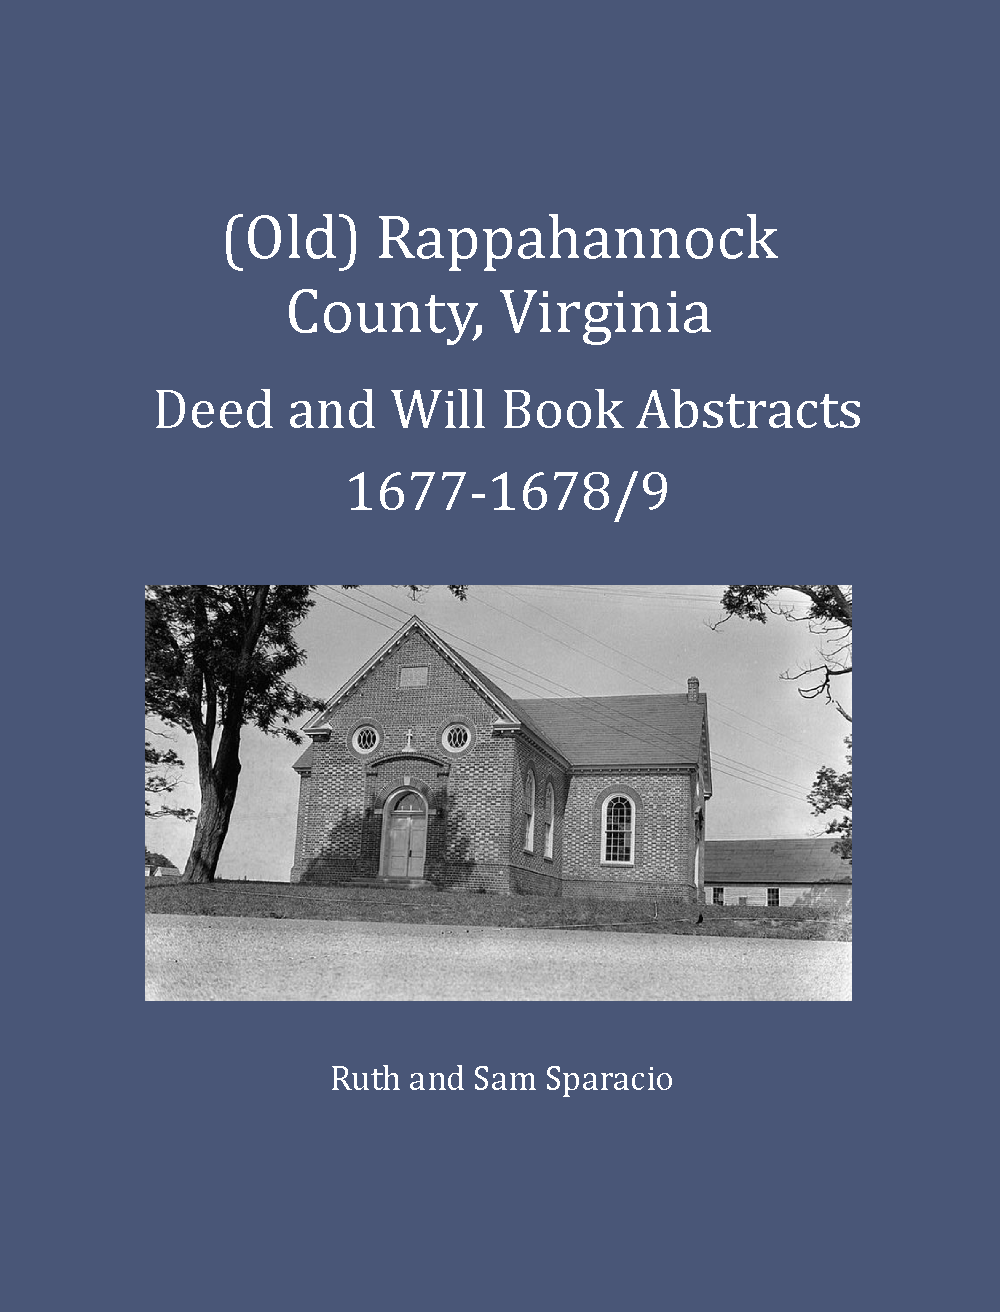 (Old) Rappahannock County, Virginia Deed and Will Book Abstracts, 1677-1678/9